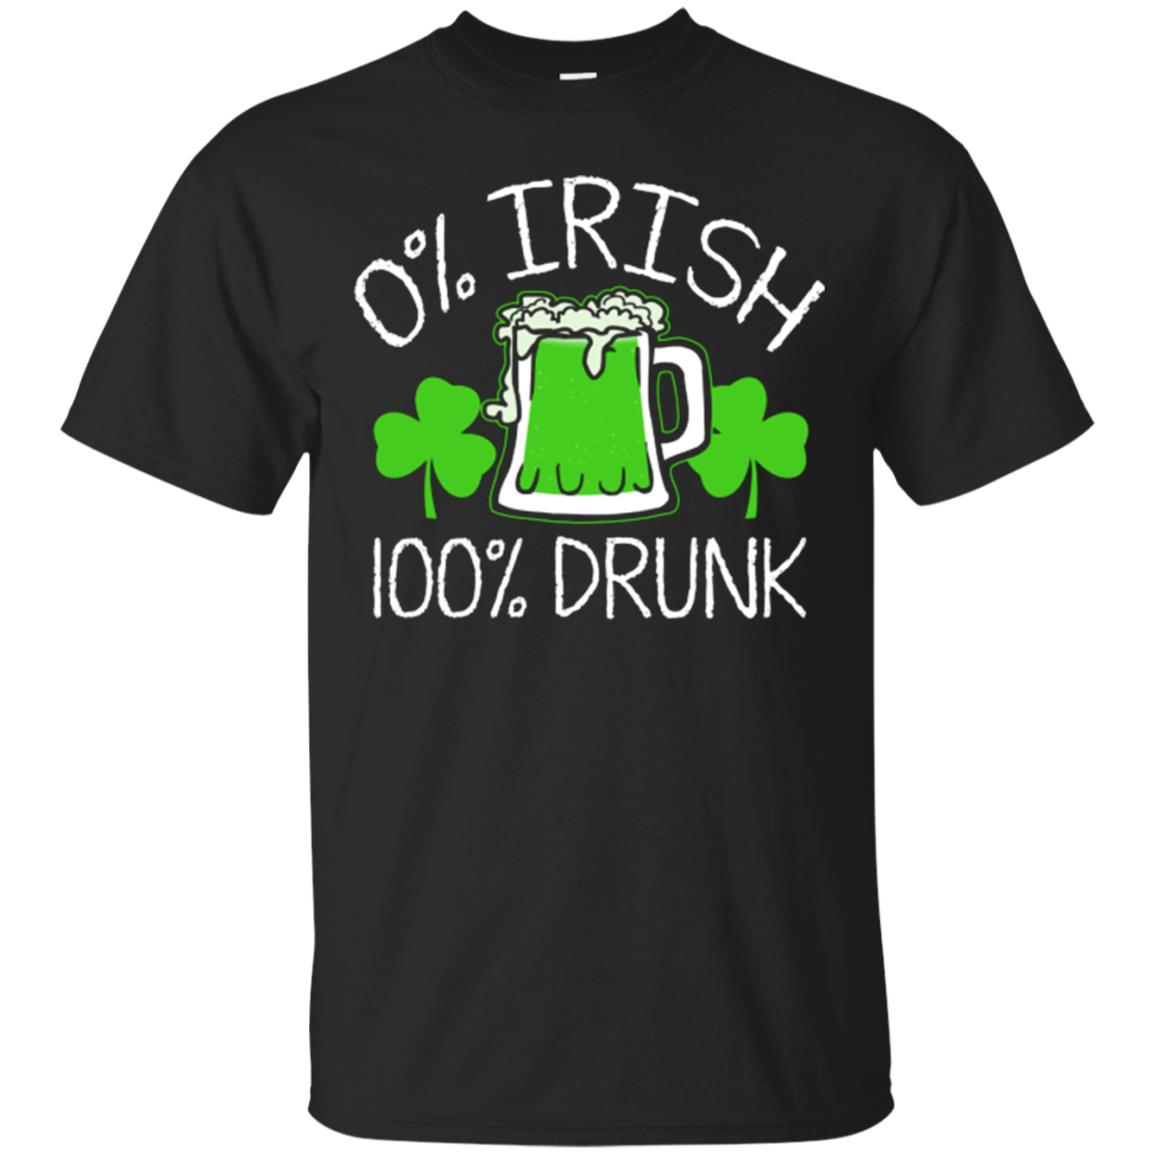 0% Irish 100% Drunk T-Shirt - Funny St. Patricks Day Shirts 99promocode